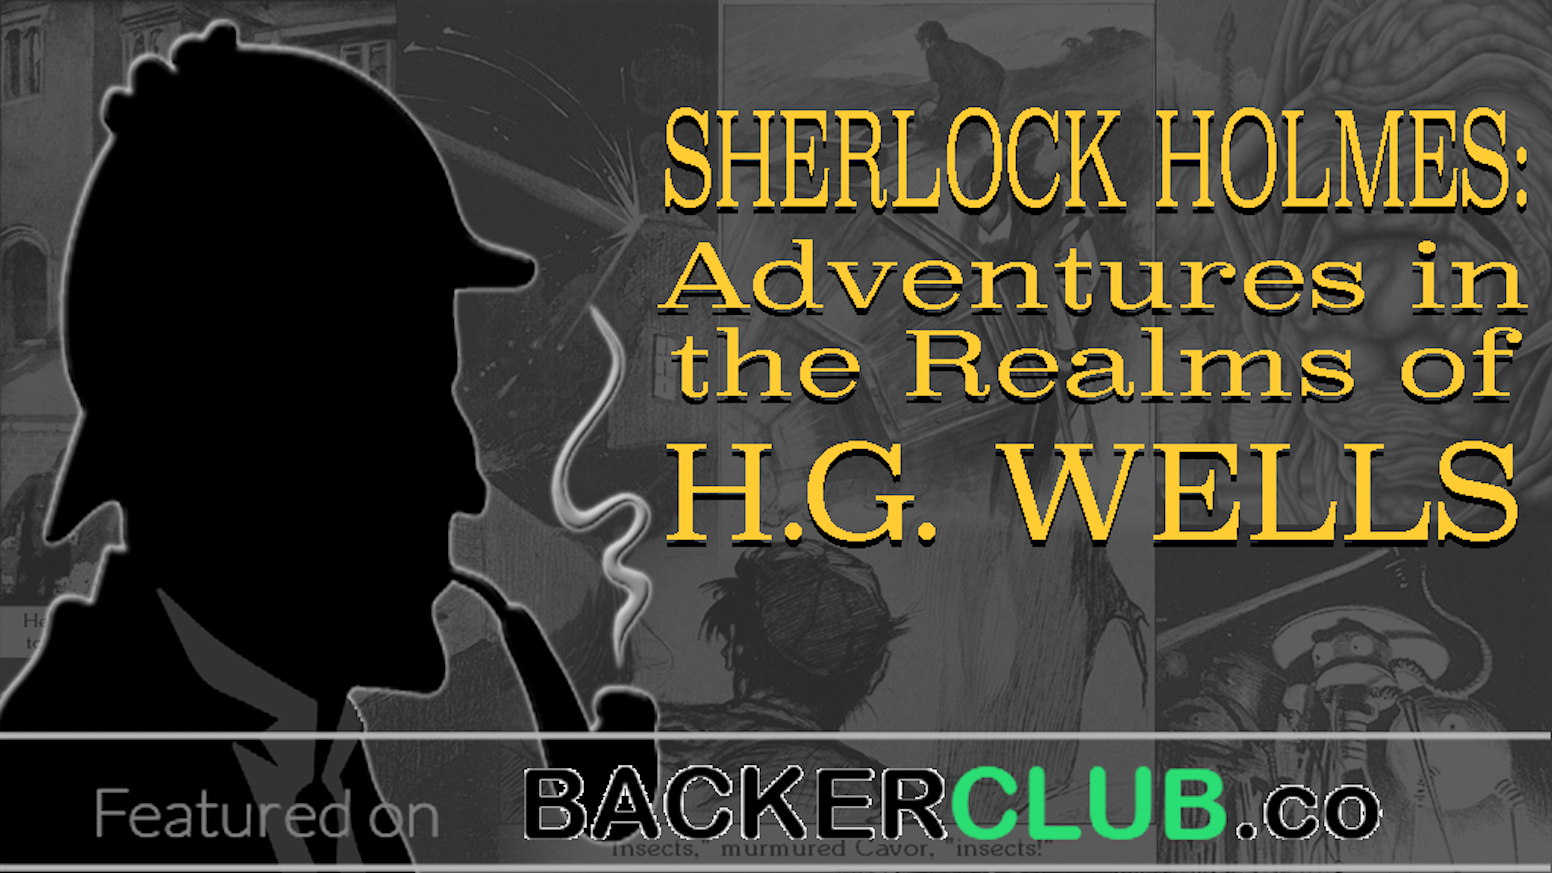 A two-volume anthology with 20+ new adventures of Sherlock Holmes solving cases involving characters from the stories of H.G. Wells.